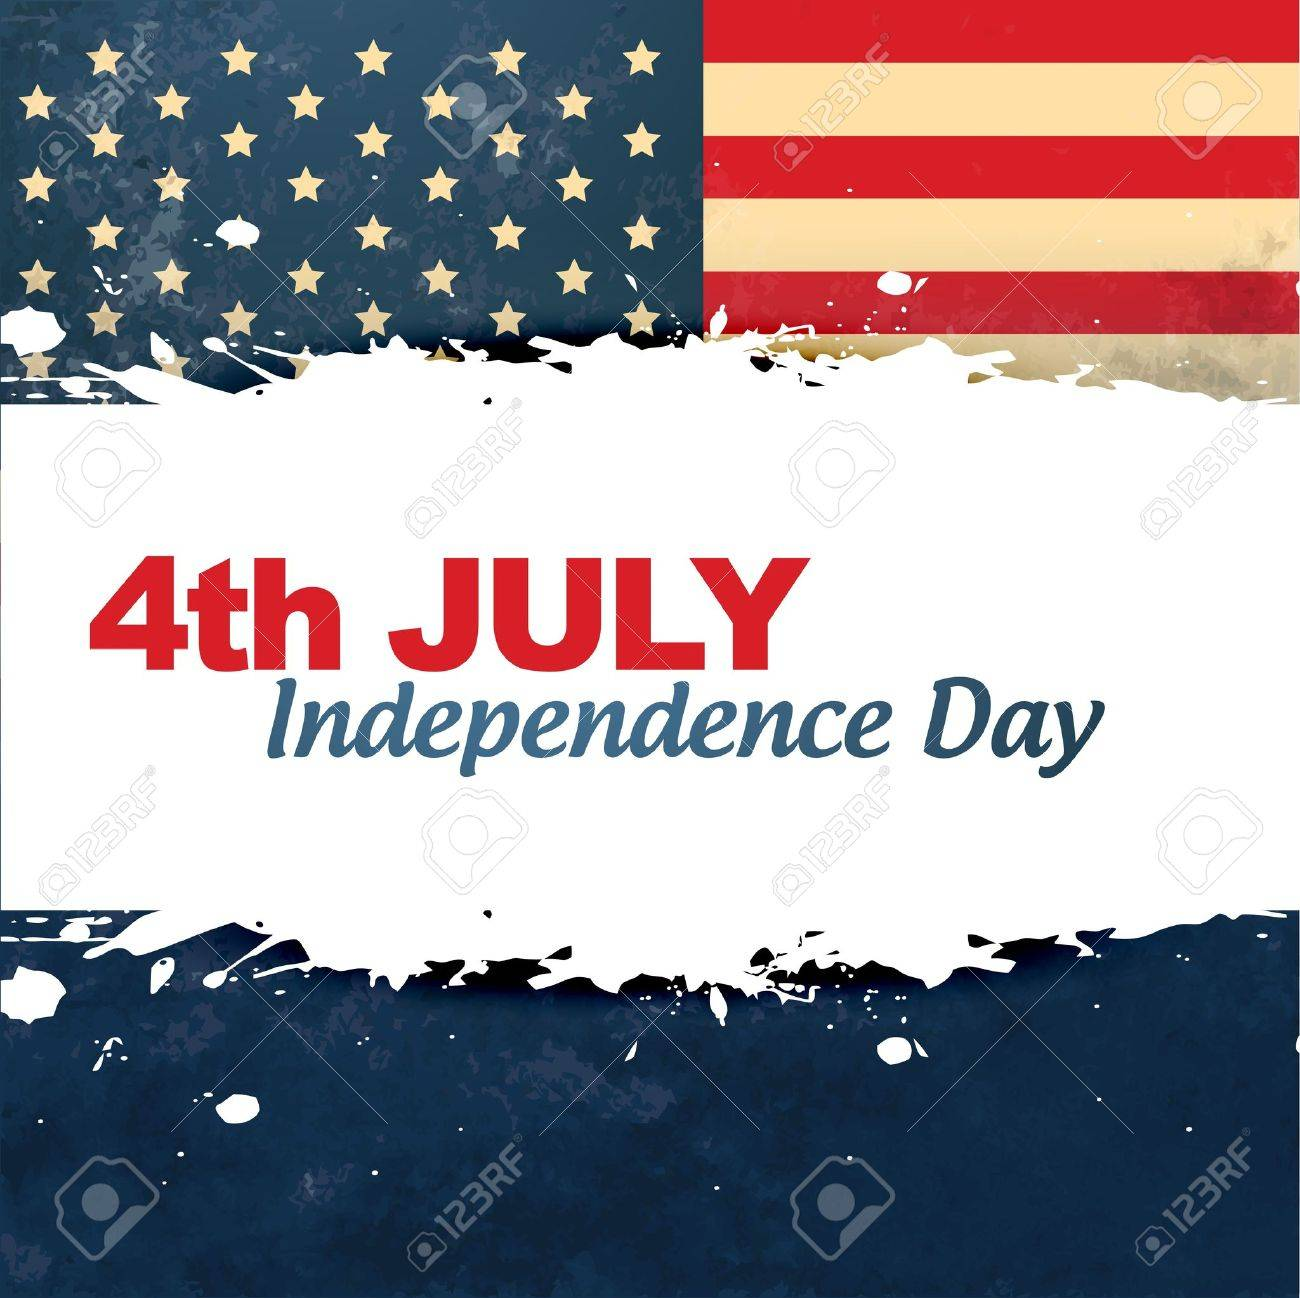 vector vintage style american independence day background Stock Vector - 19979456